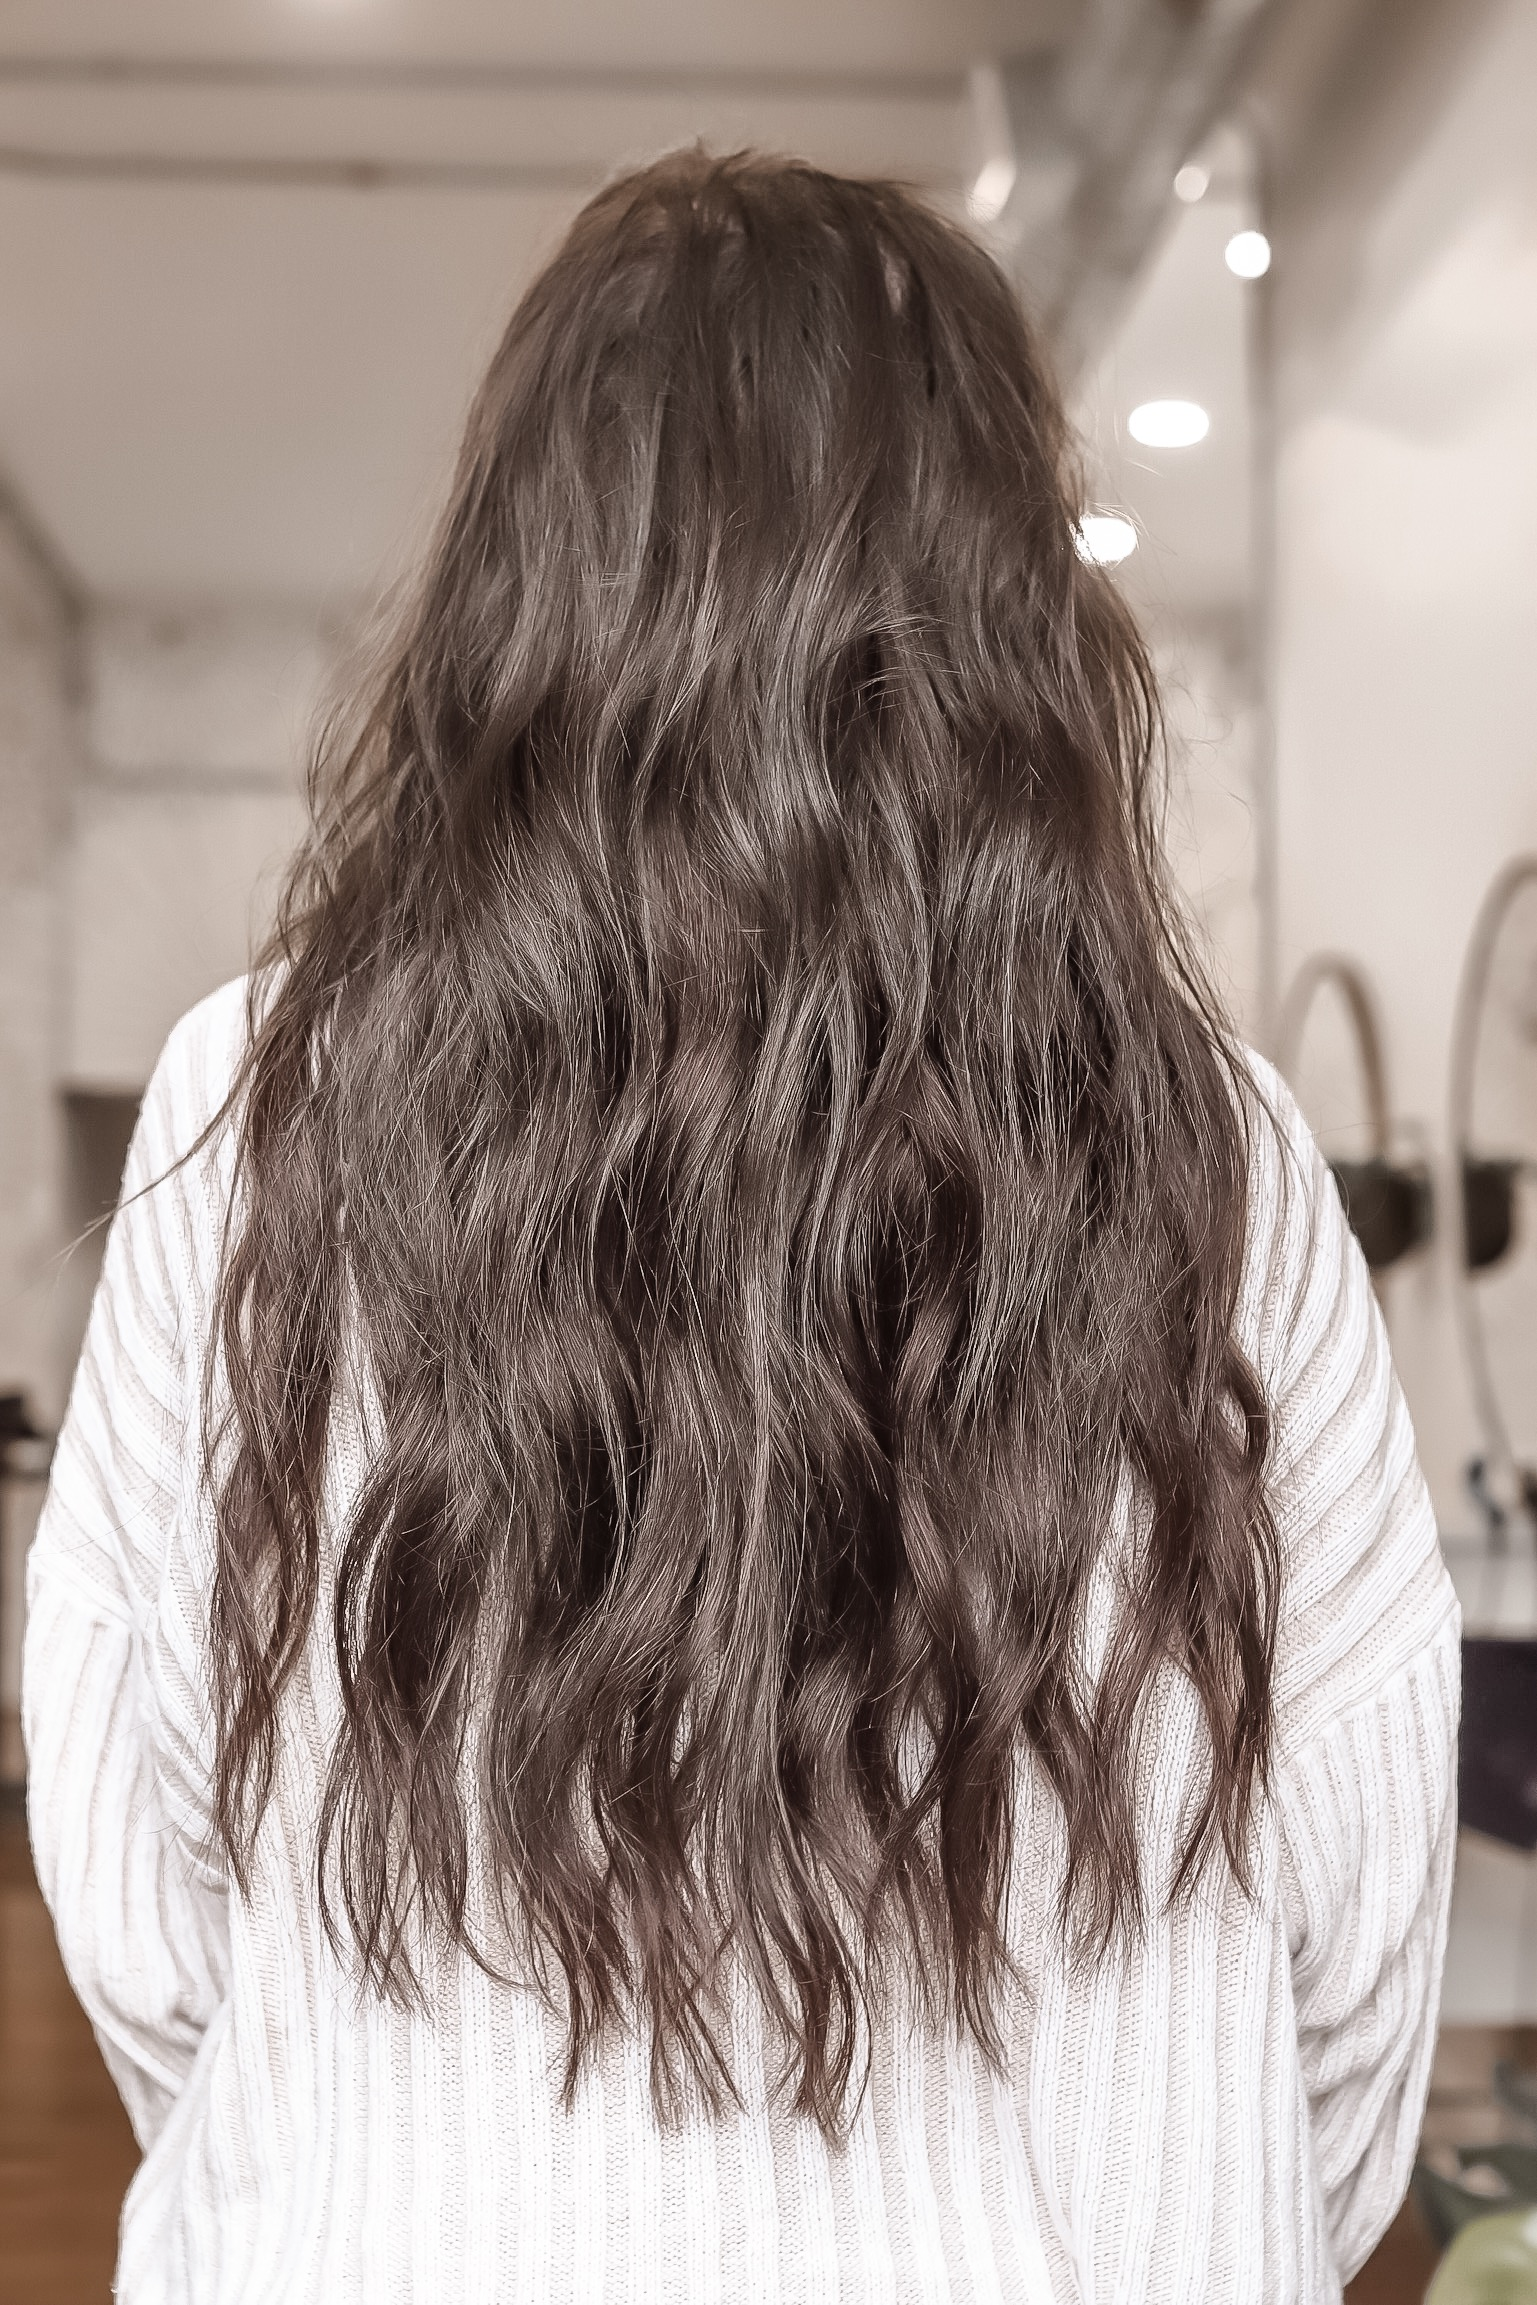 Hair Extensions FAQs After